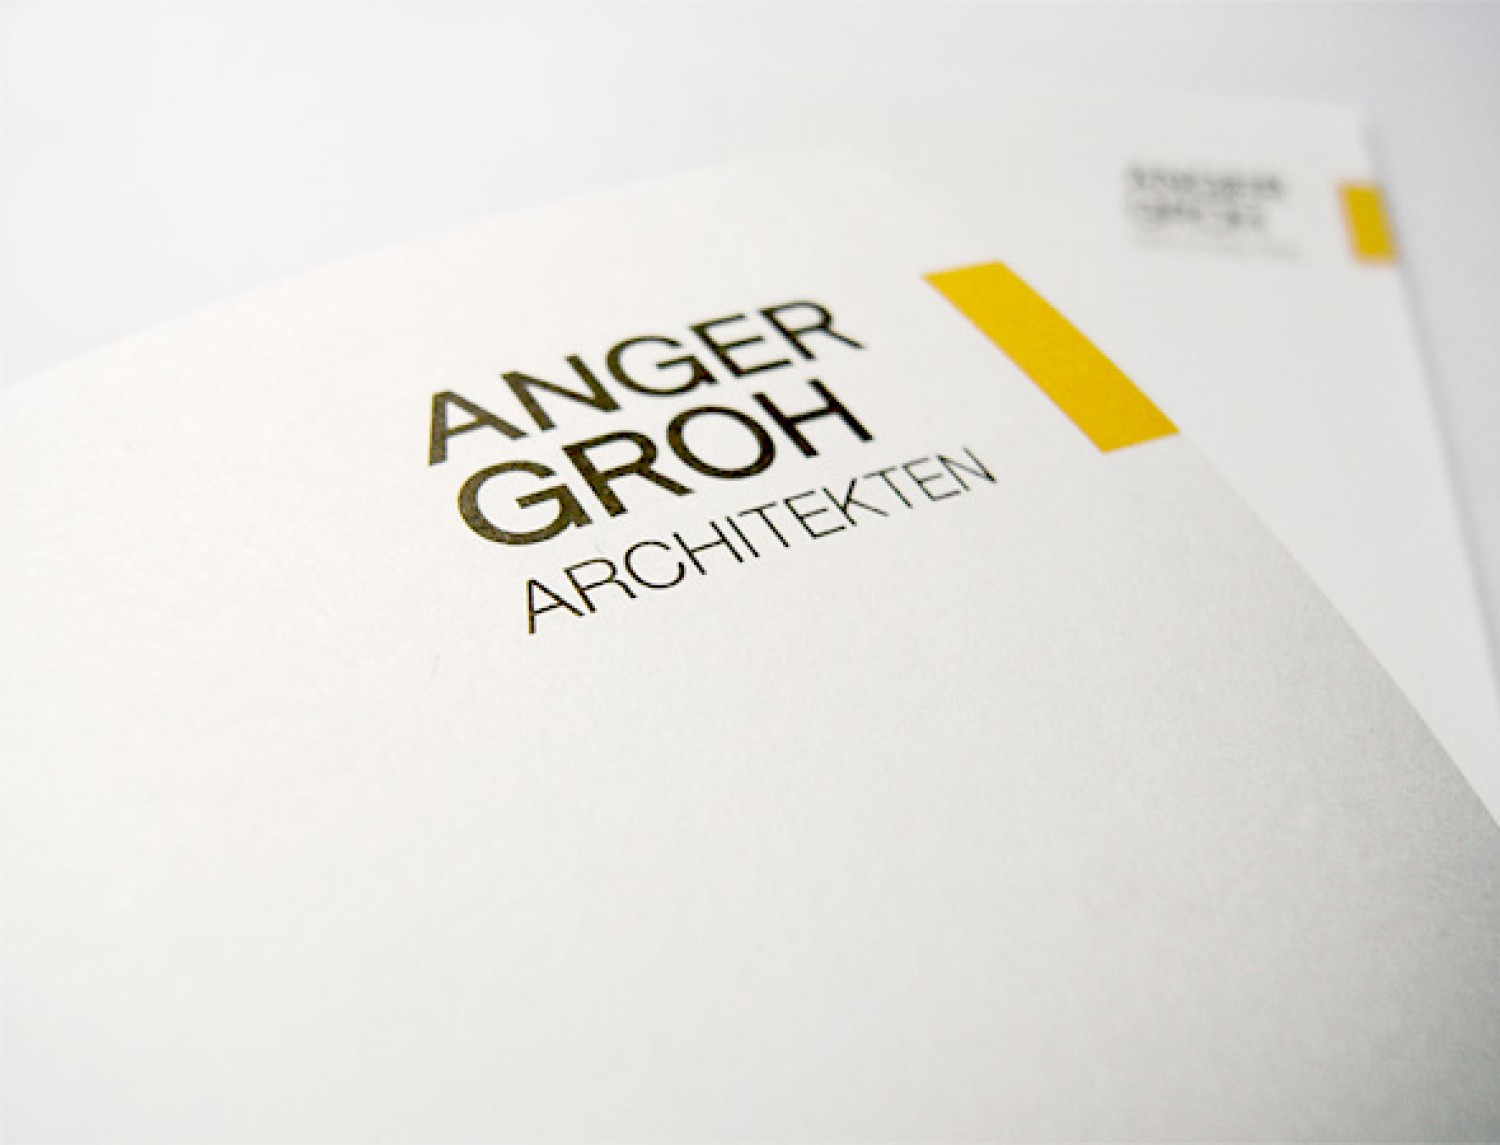 Anger Groh Architekten